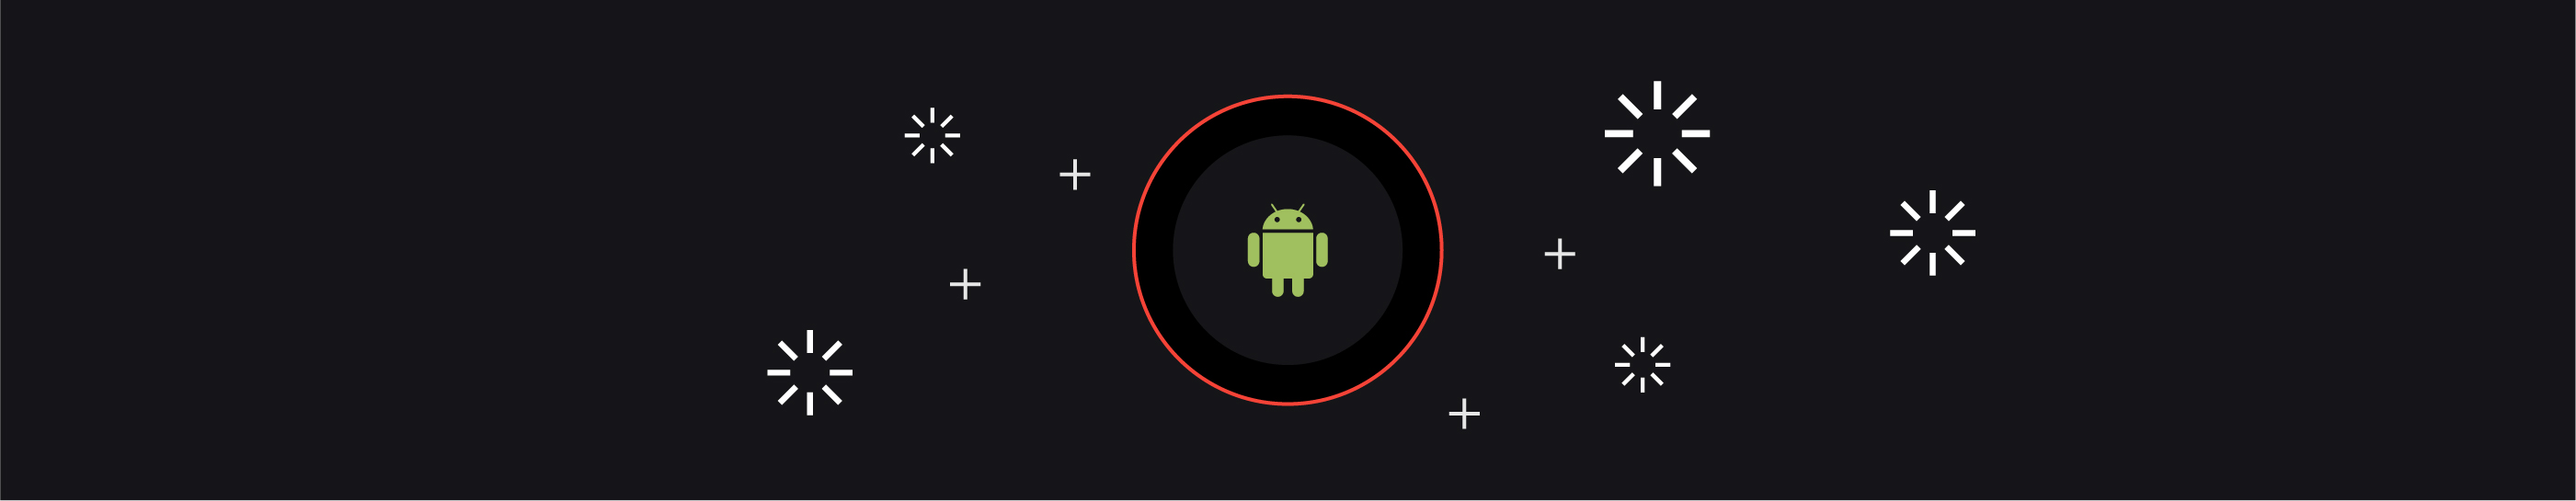 Our Android App is Here!